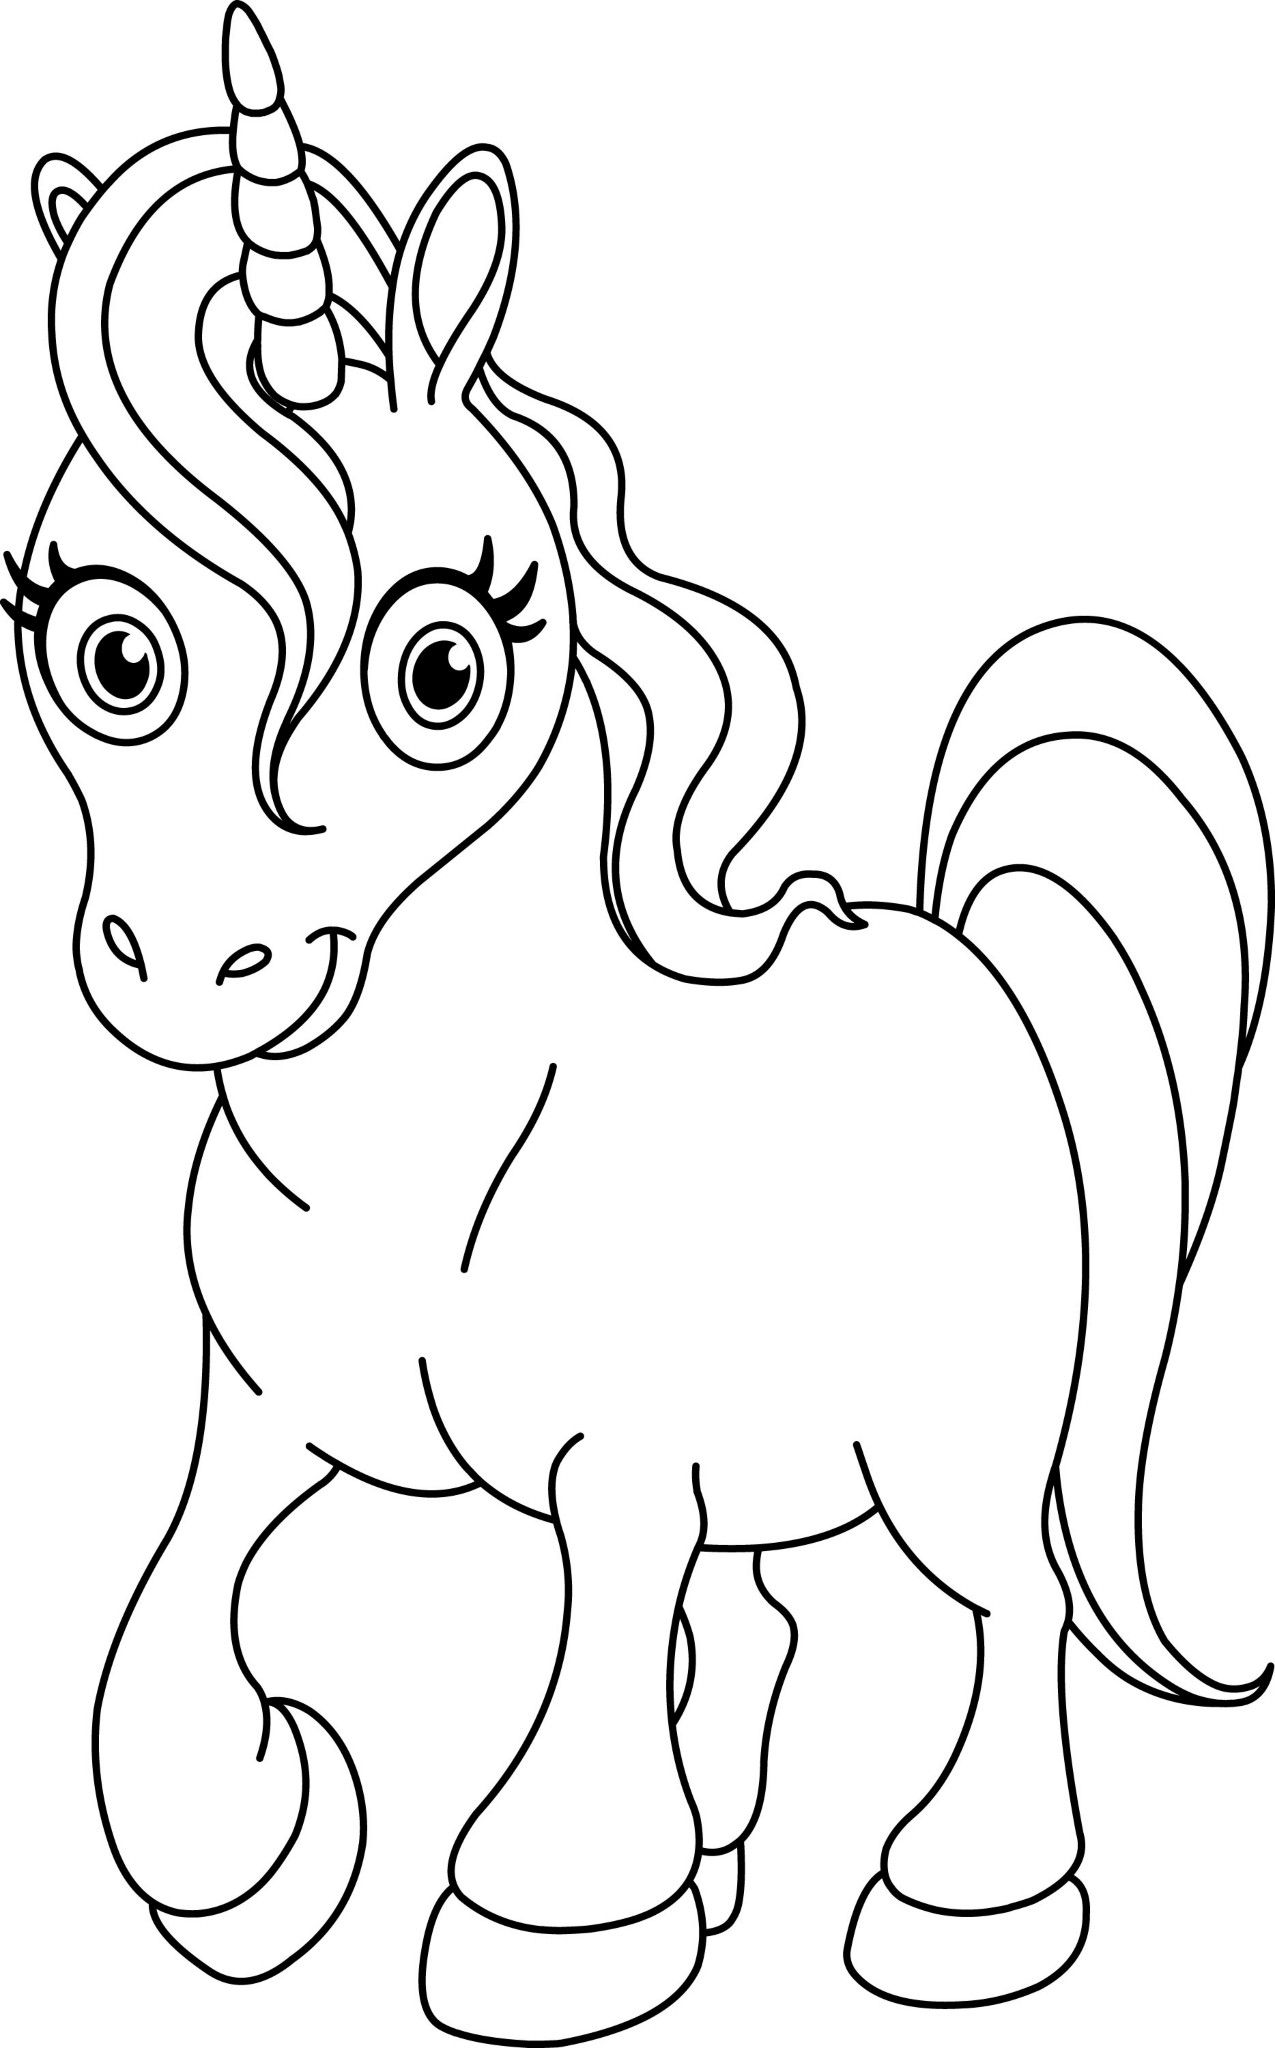 Pin By Vivien On Ja Dae First Birthday Emoji Coloring Pages Horse Coloring Pages Unicorn Coloring Pages